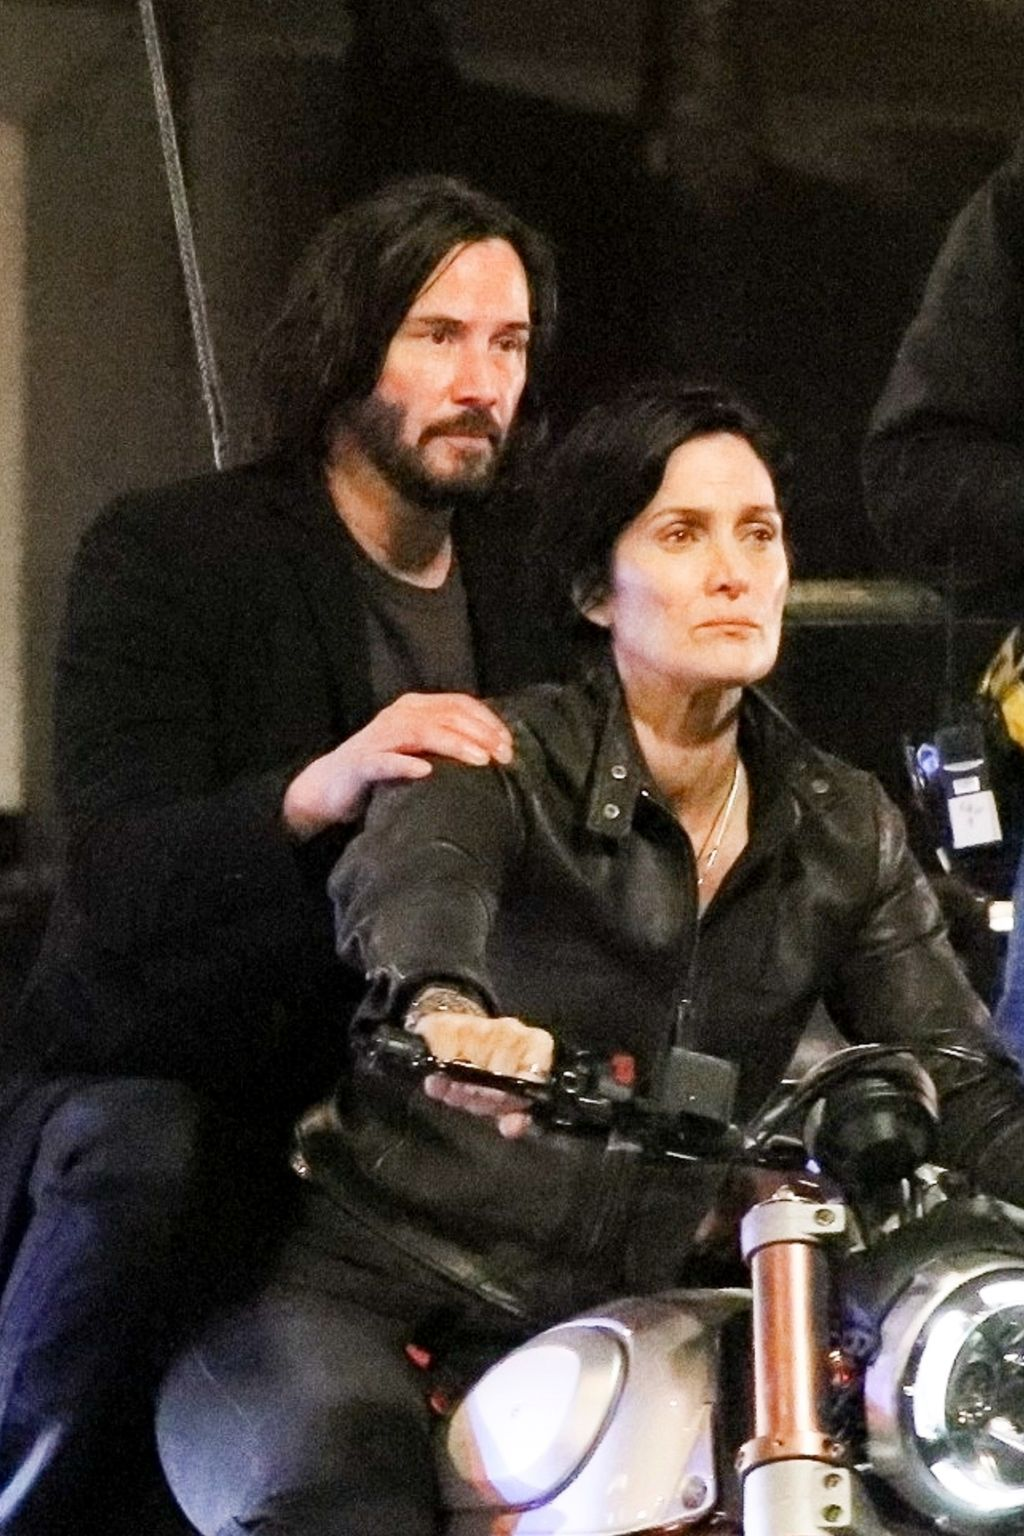 """The Matrix 4"": Keanu Reeves y Carrie-Anne Moss se reúnen en el intenso rodaje del filme"